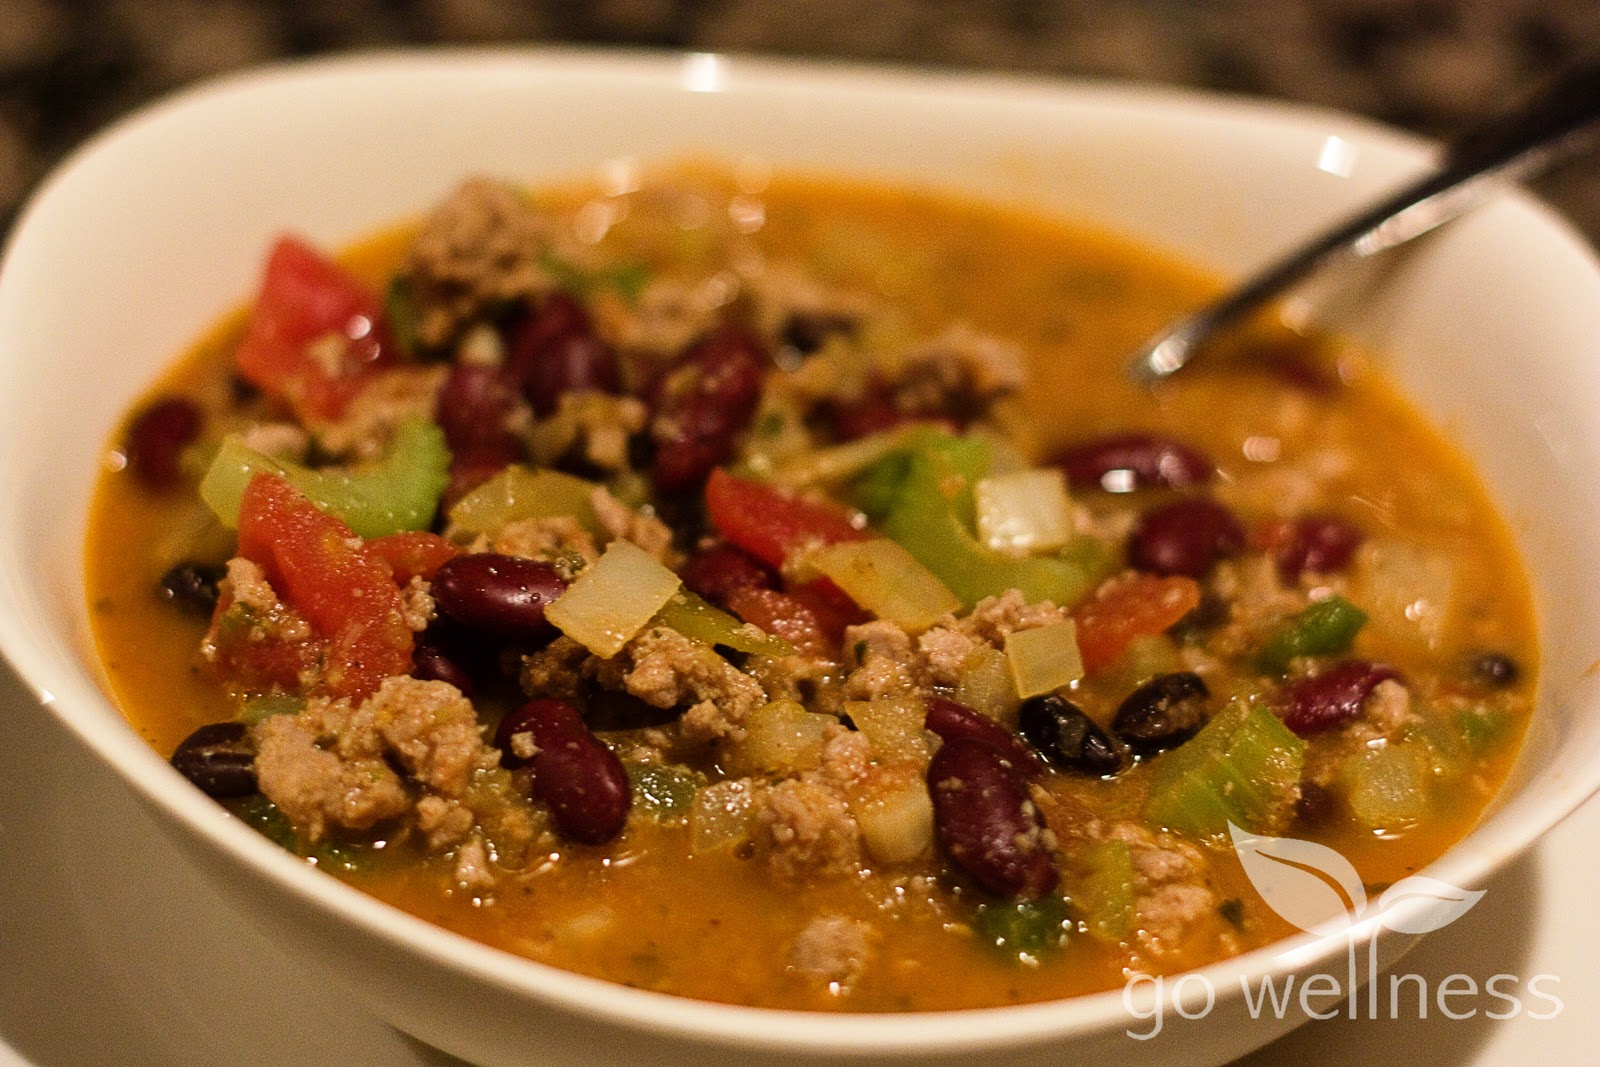 Nutrition and Wellness Bytes: Foodie Friday: Healthy Turkey Chili